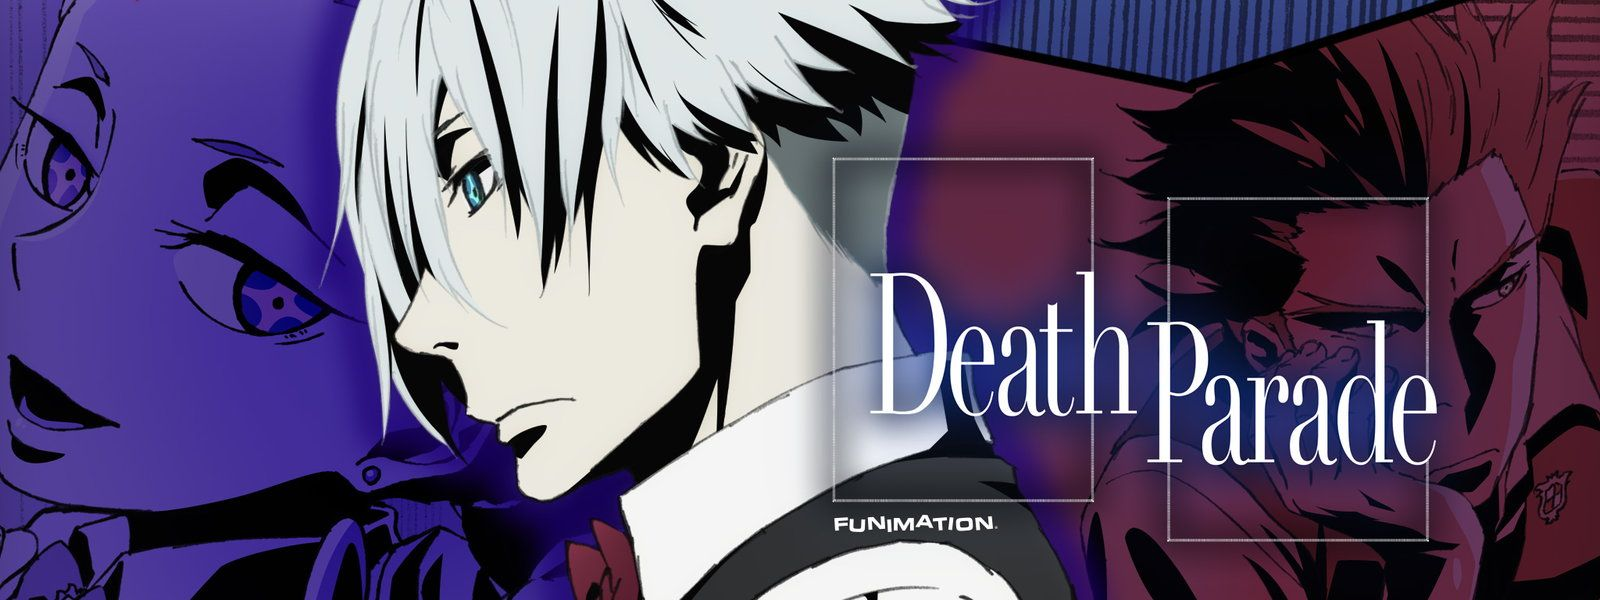 Death Parade JustDubs Online Dubbed Anime Watch Anime